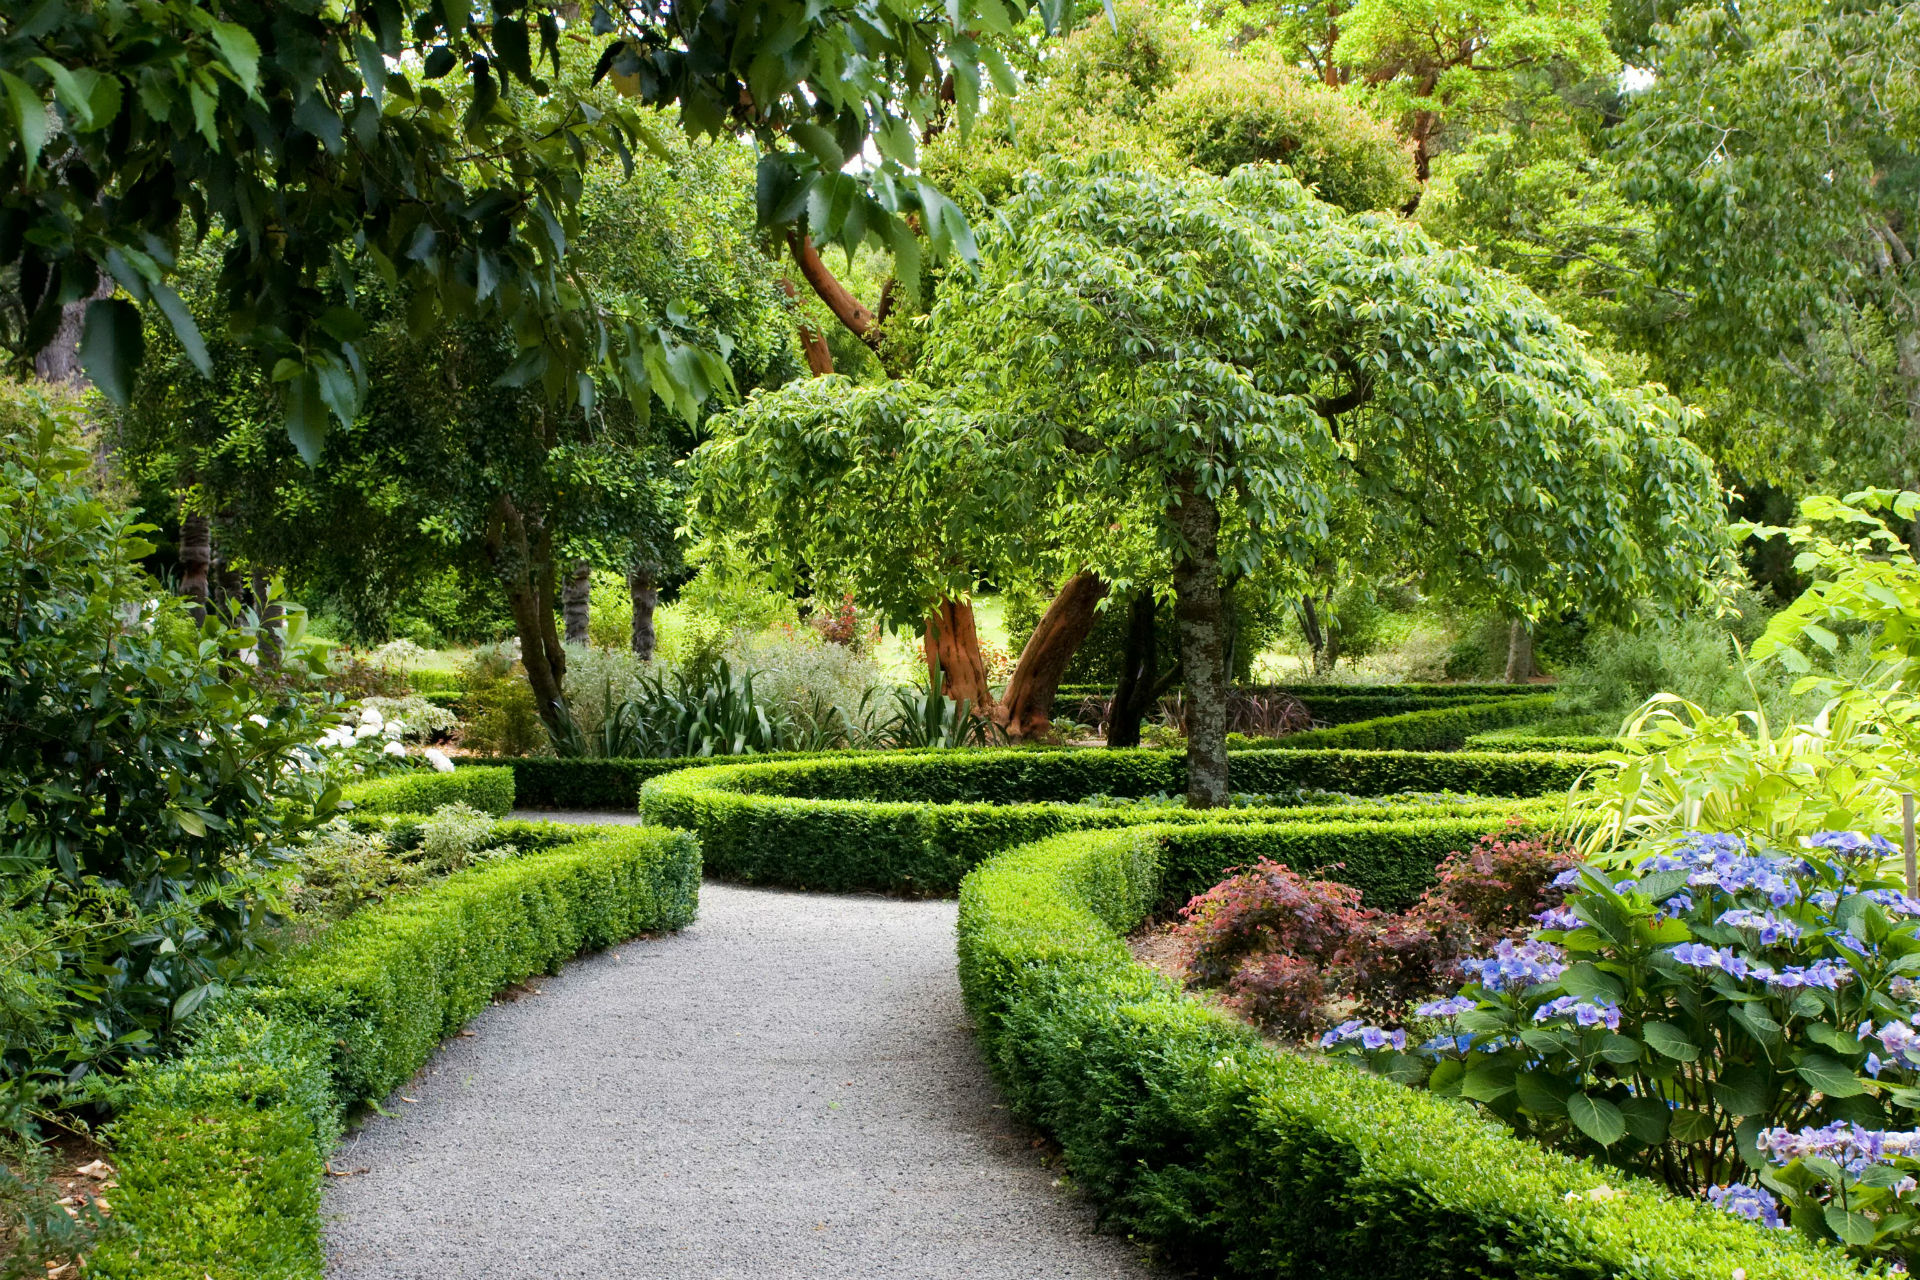 Parks New Zealand Landscape Christchurch Shrubs Design Nature Wallpaper 192